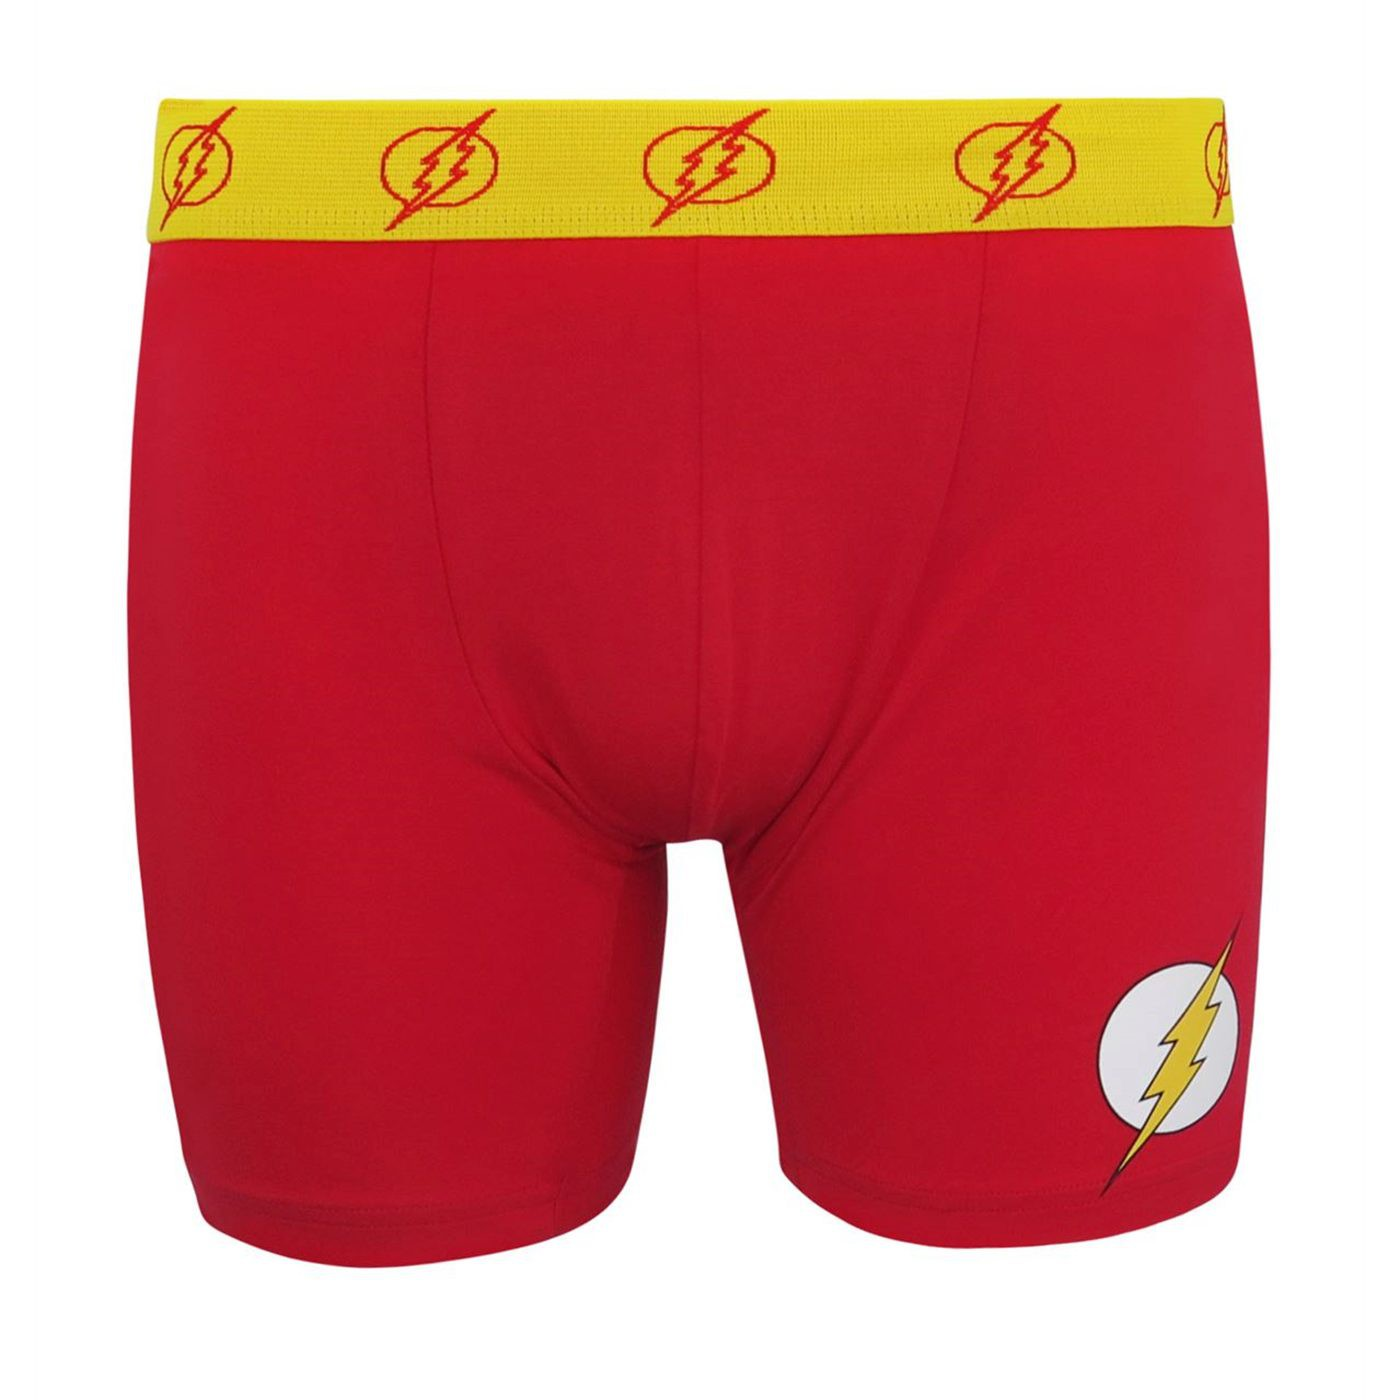 Flash Symbol Men's Underwear Fashion Boxer Briefs